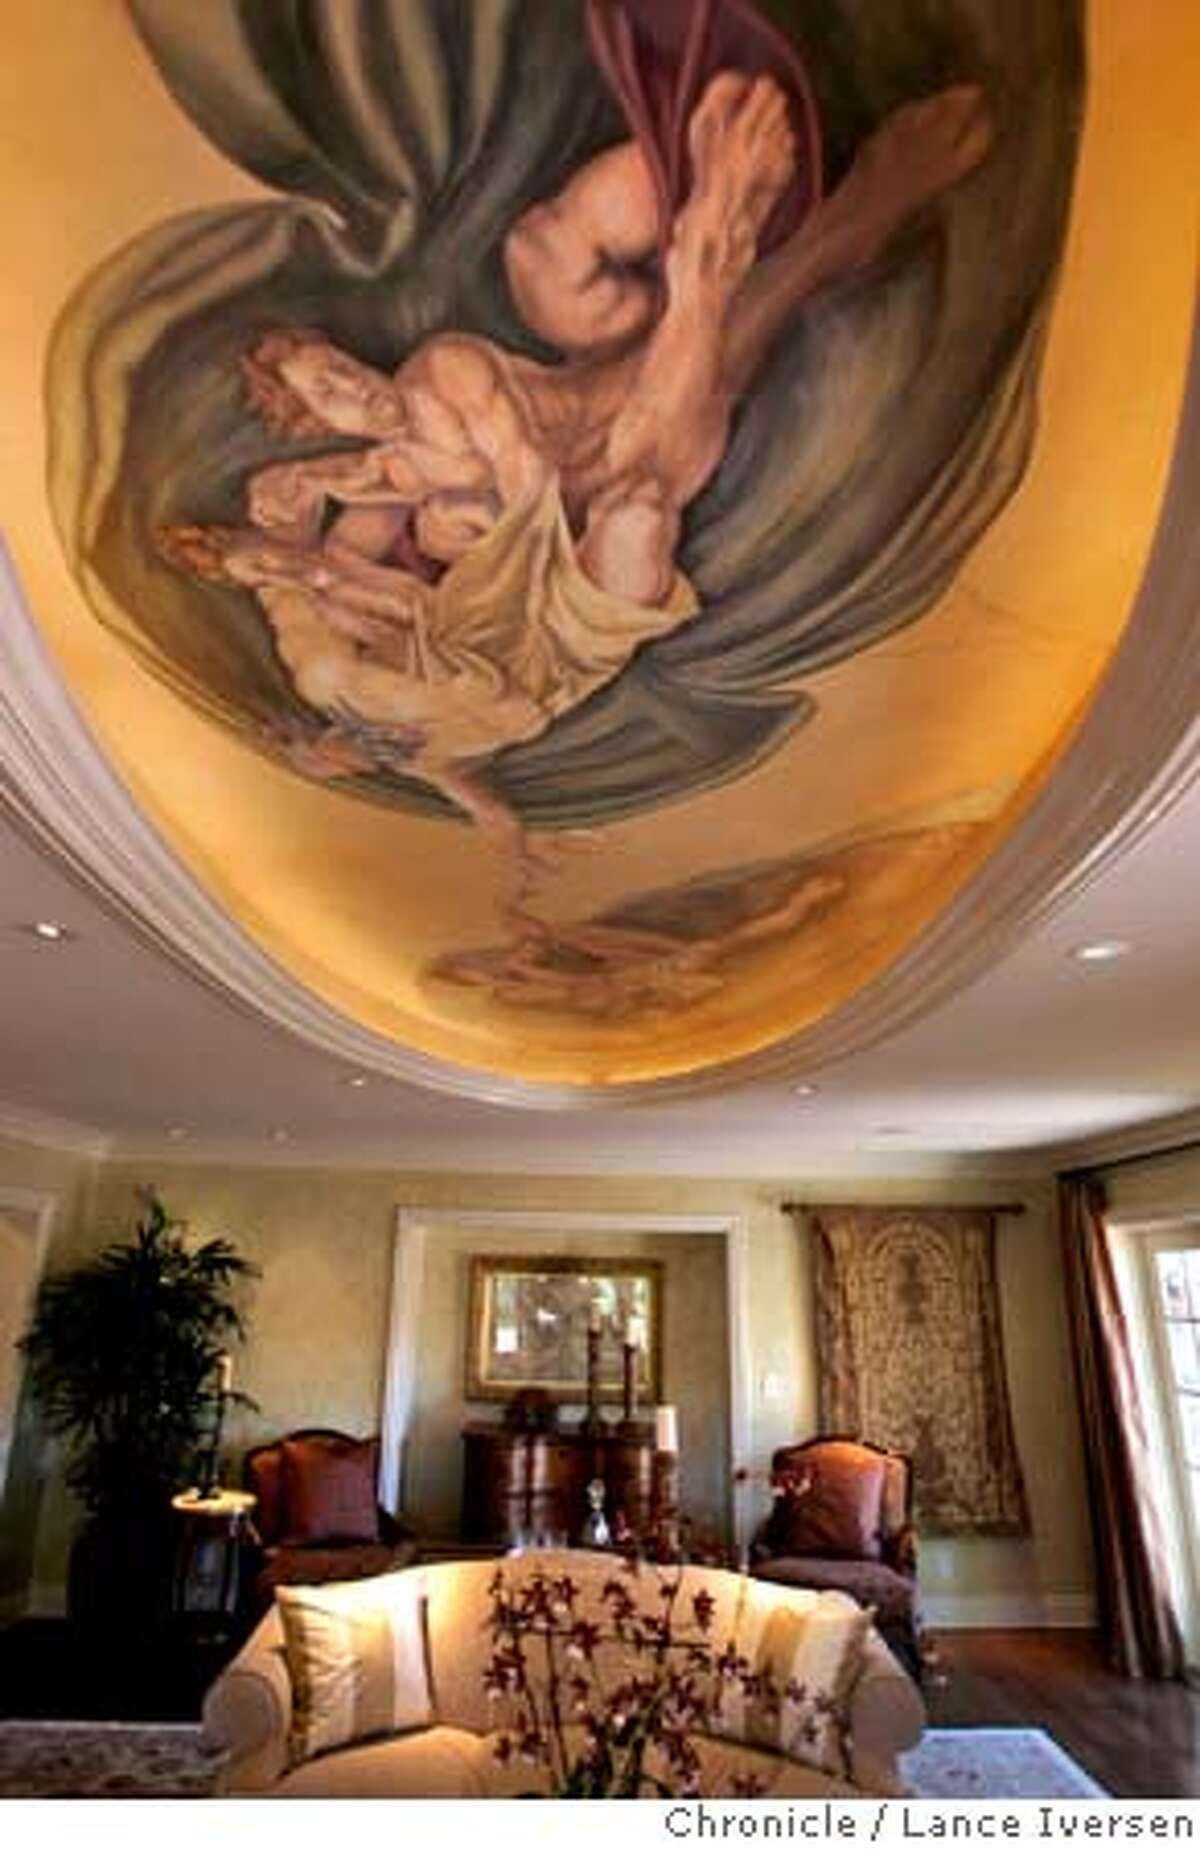 LESHER01_231.jpg_ A large fresco style painting adorns the ceiling of the formal living room at the Seven Oaks estate; Seven Oaks is the former estate of the late Dean Lesher, founder of the Contra Costa Times newspaper, is on the market at an asking price of almost eight million dollars. Or so. The media toured of the property Thursday morning. Pacific Union Salesman Steve Mavromihalis and Gil Fleitas pointed out the lavish appointments that included a home theater, ballroom and indoor and outdoor pools, plus a waterfall on the 4.3 Orinda estates. By Lance Iversen/San Francisco Chronicle MANDATORY CREDIT PHOTOG AND SAN FRANCISCO CHRONICLE.